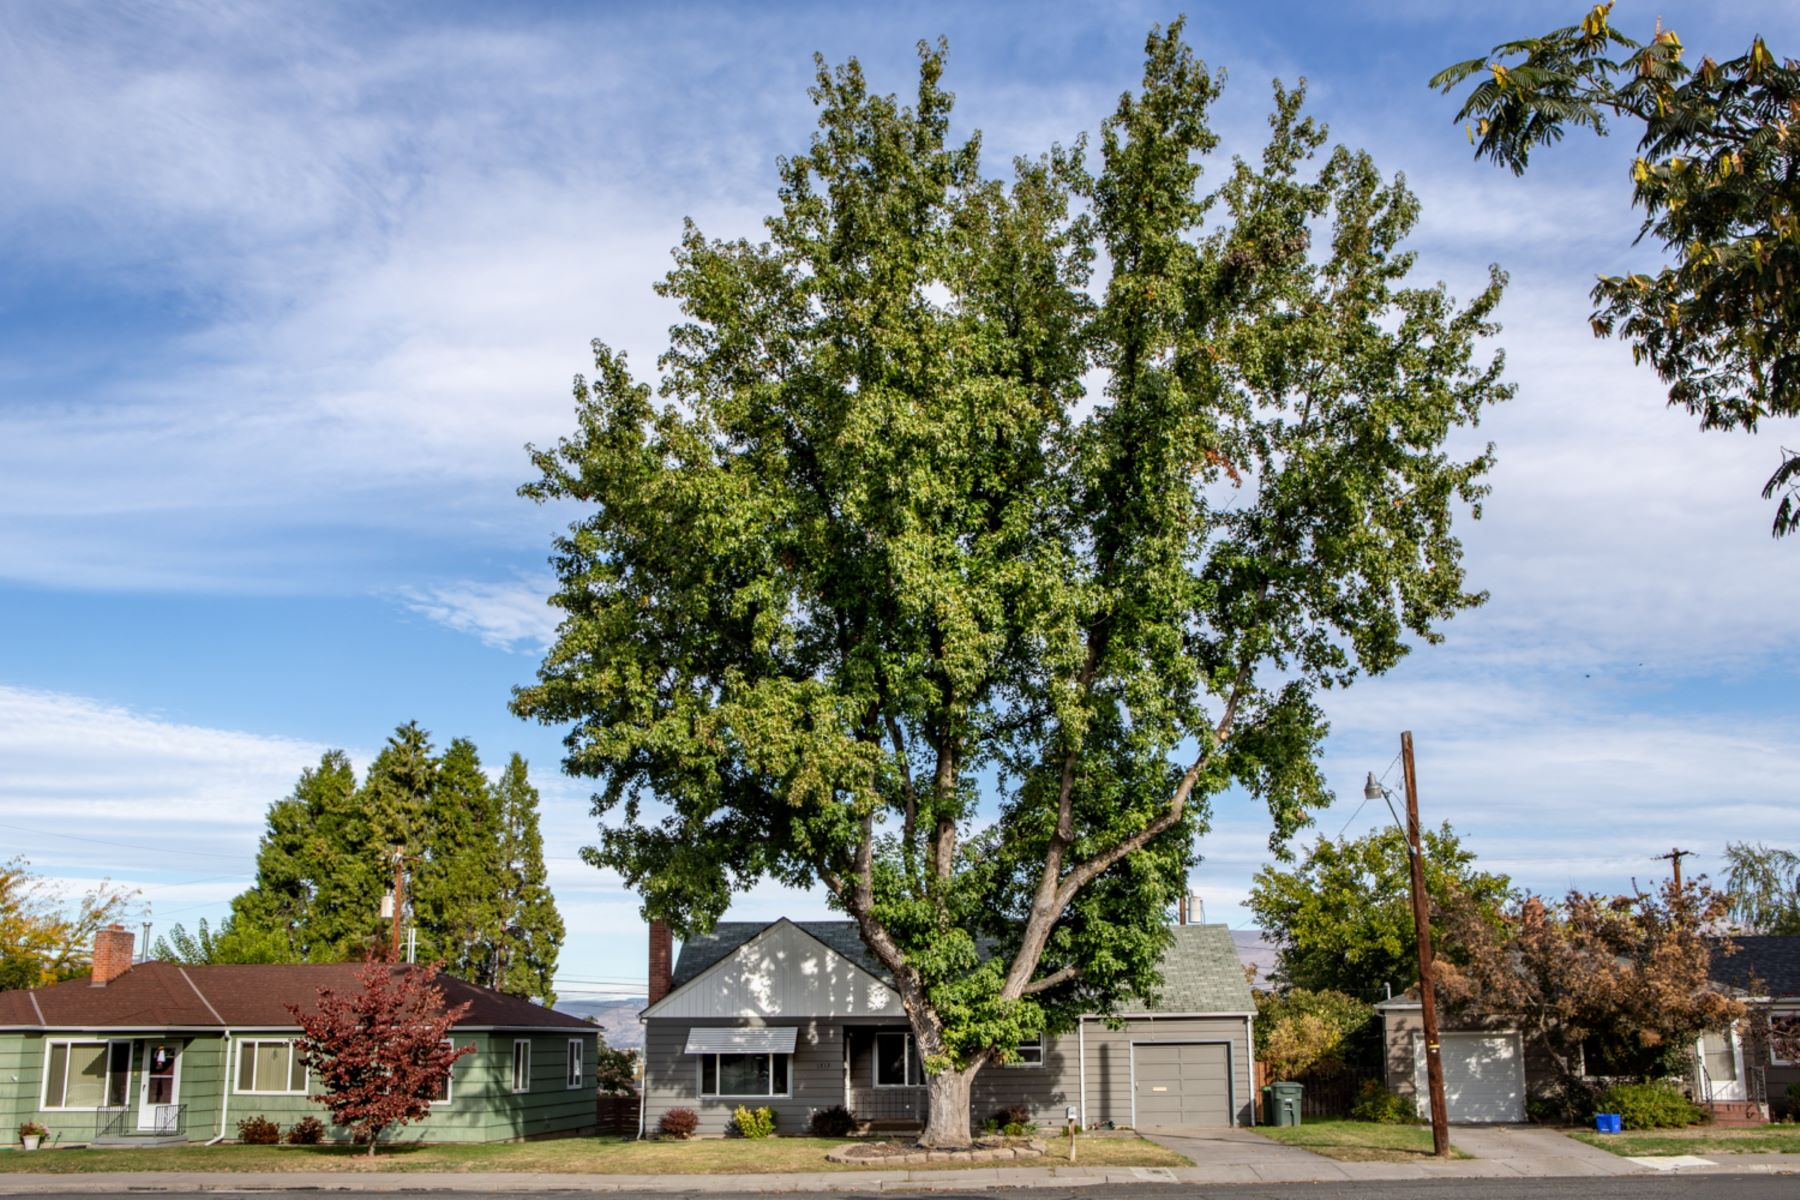 Single Family Homes for Active at 1713 E 13th The Dalles, Oregon 97058 United States